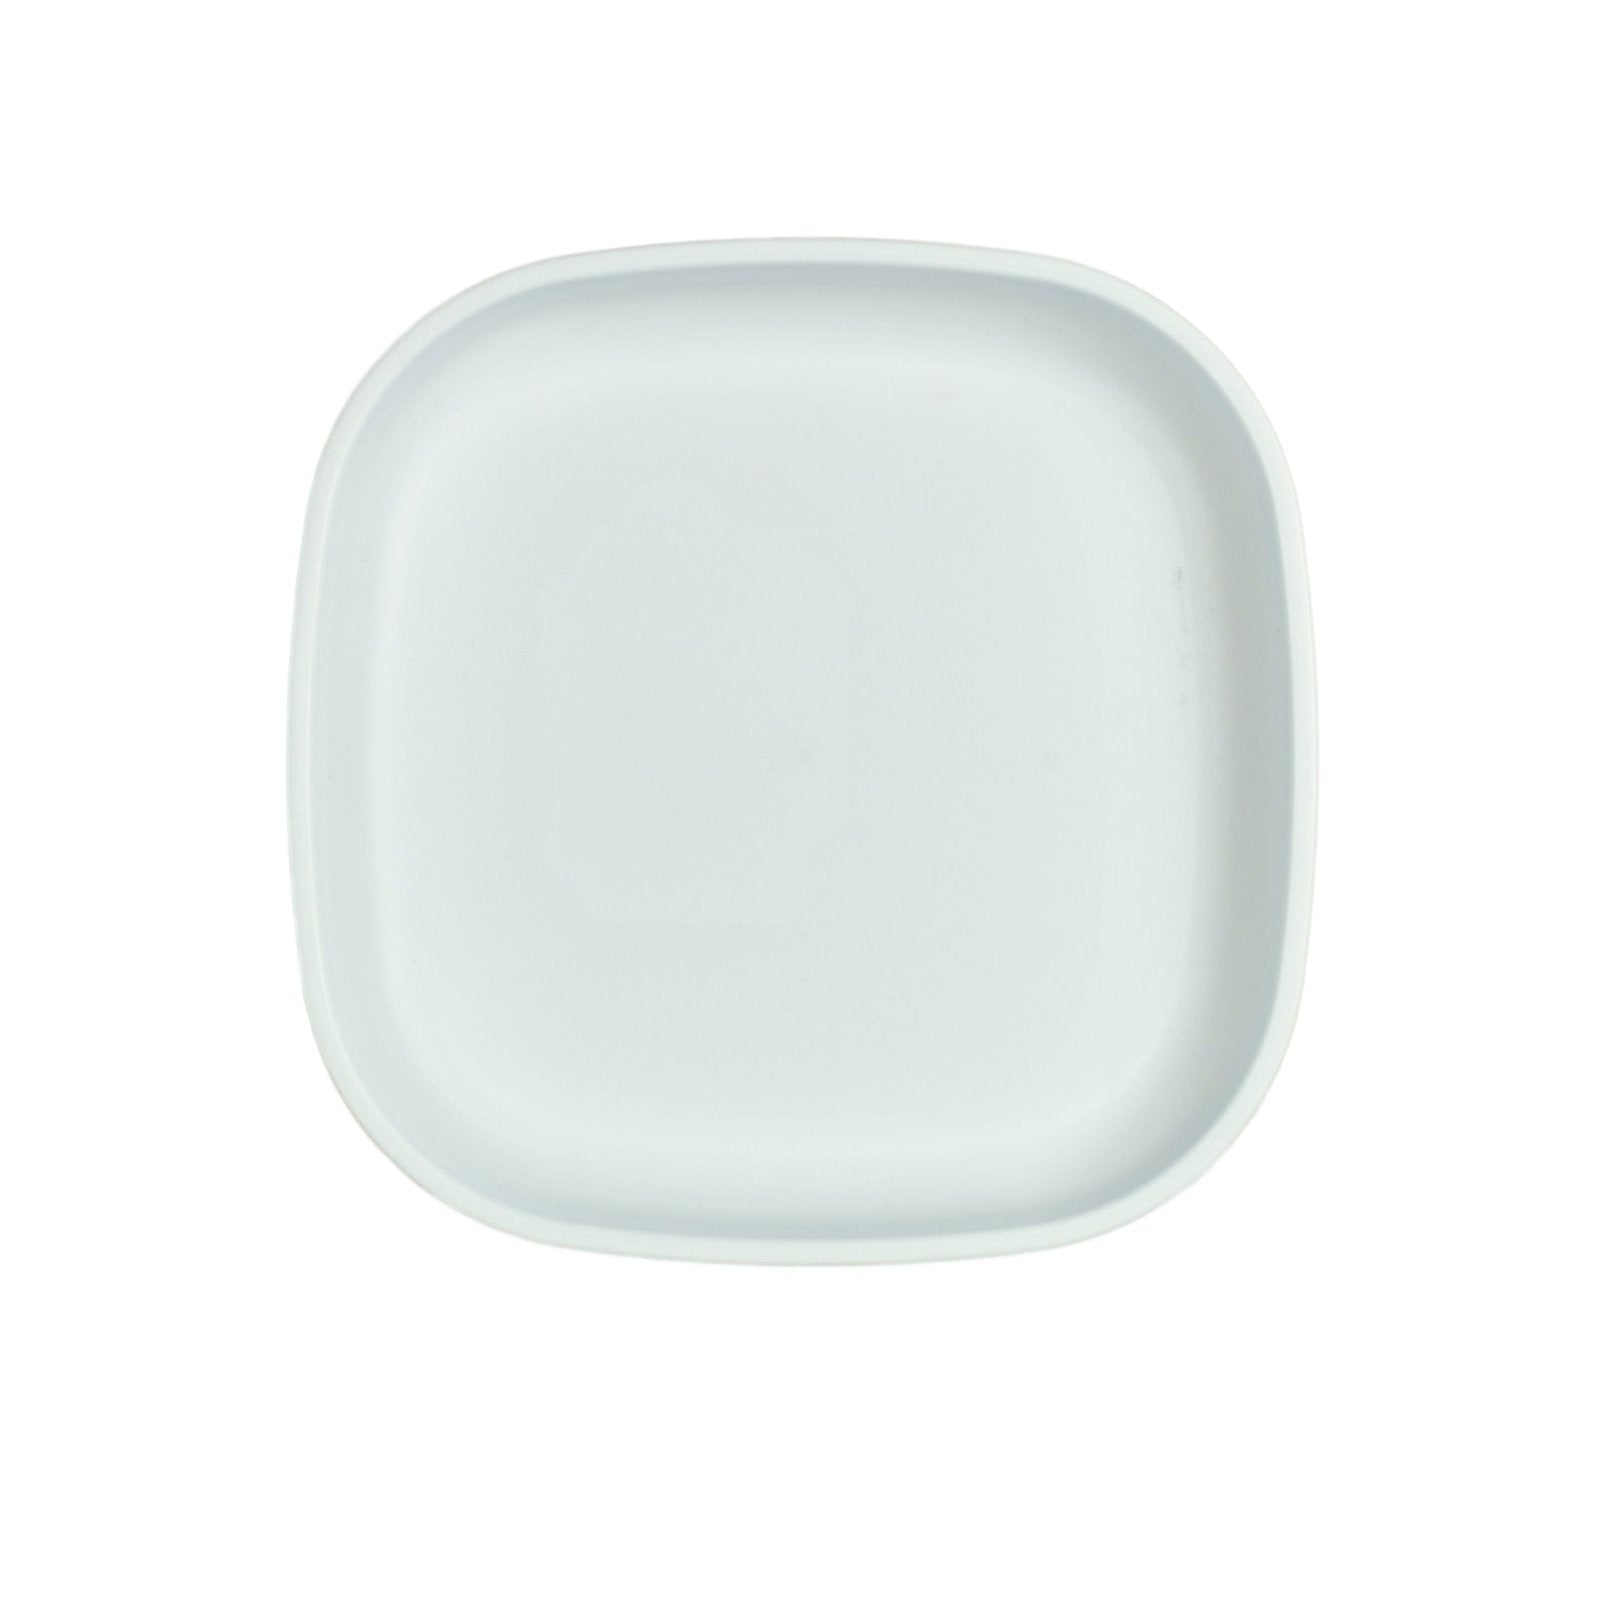 Replay Large Plate Replay Dinnerware White at Little Earth Nest Eco Shop